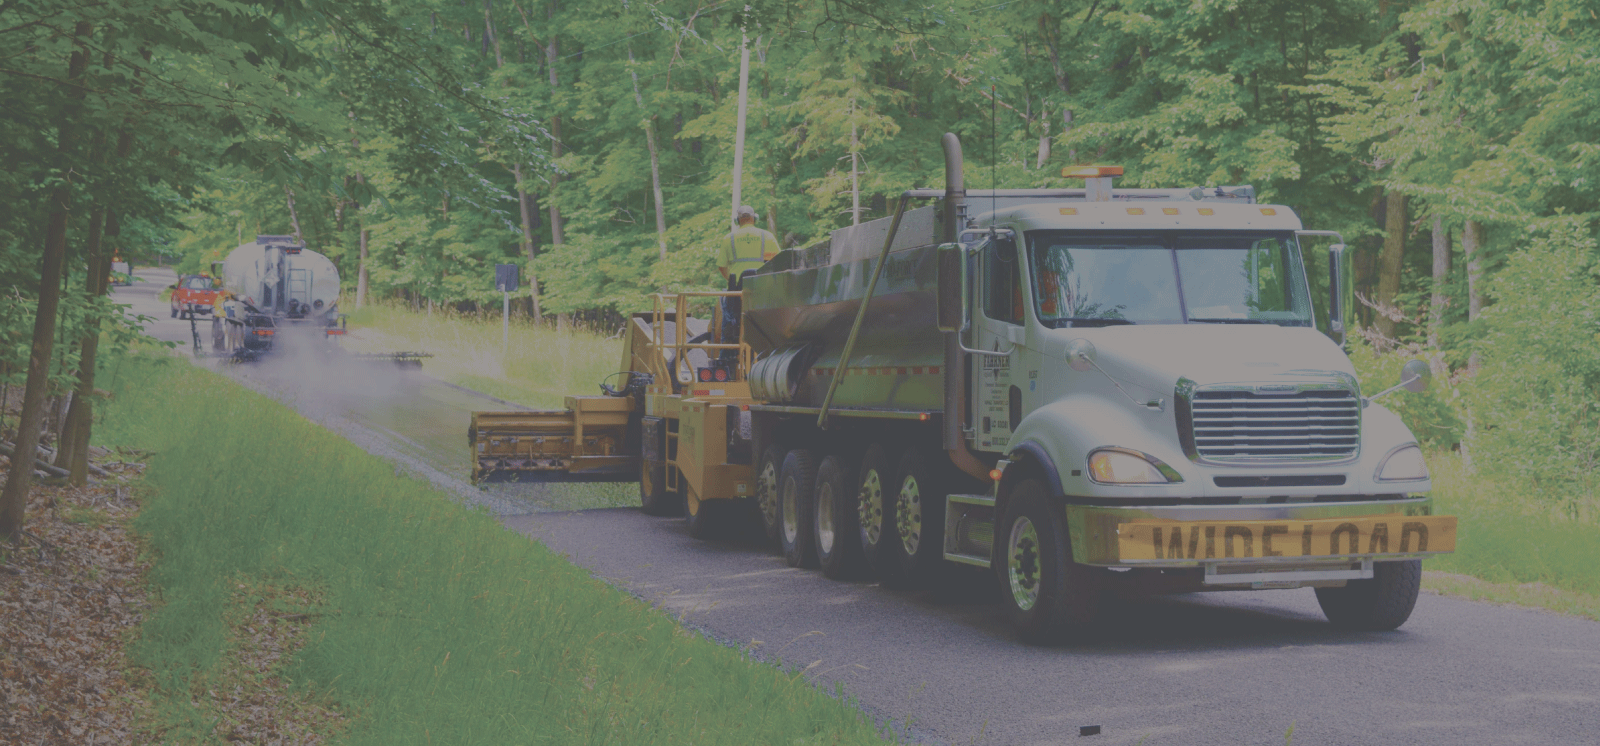 2015 Road Funding Package & Deferred Infrastructure Investments